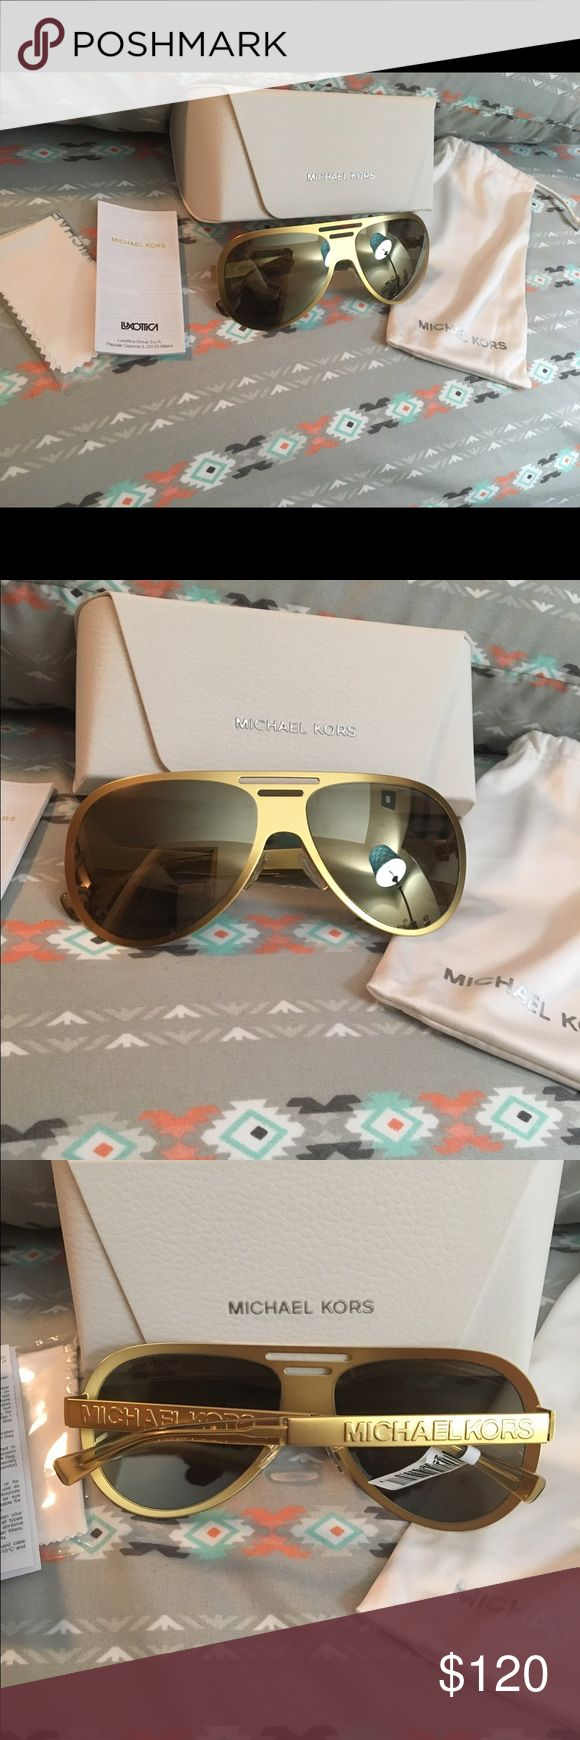 Brand new Michael Kors gold aviator sunglasses Brand New with tag, Michael Kors gold aviator sunglasses. Come with hard and soft case, pamphlet and cleaning cloth. Michael Kors Accessories Sunglasses